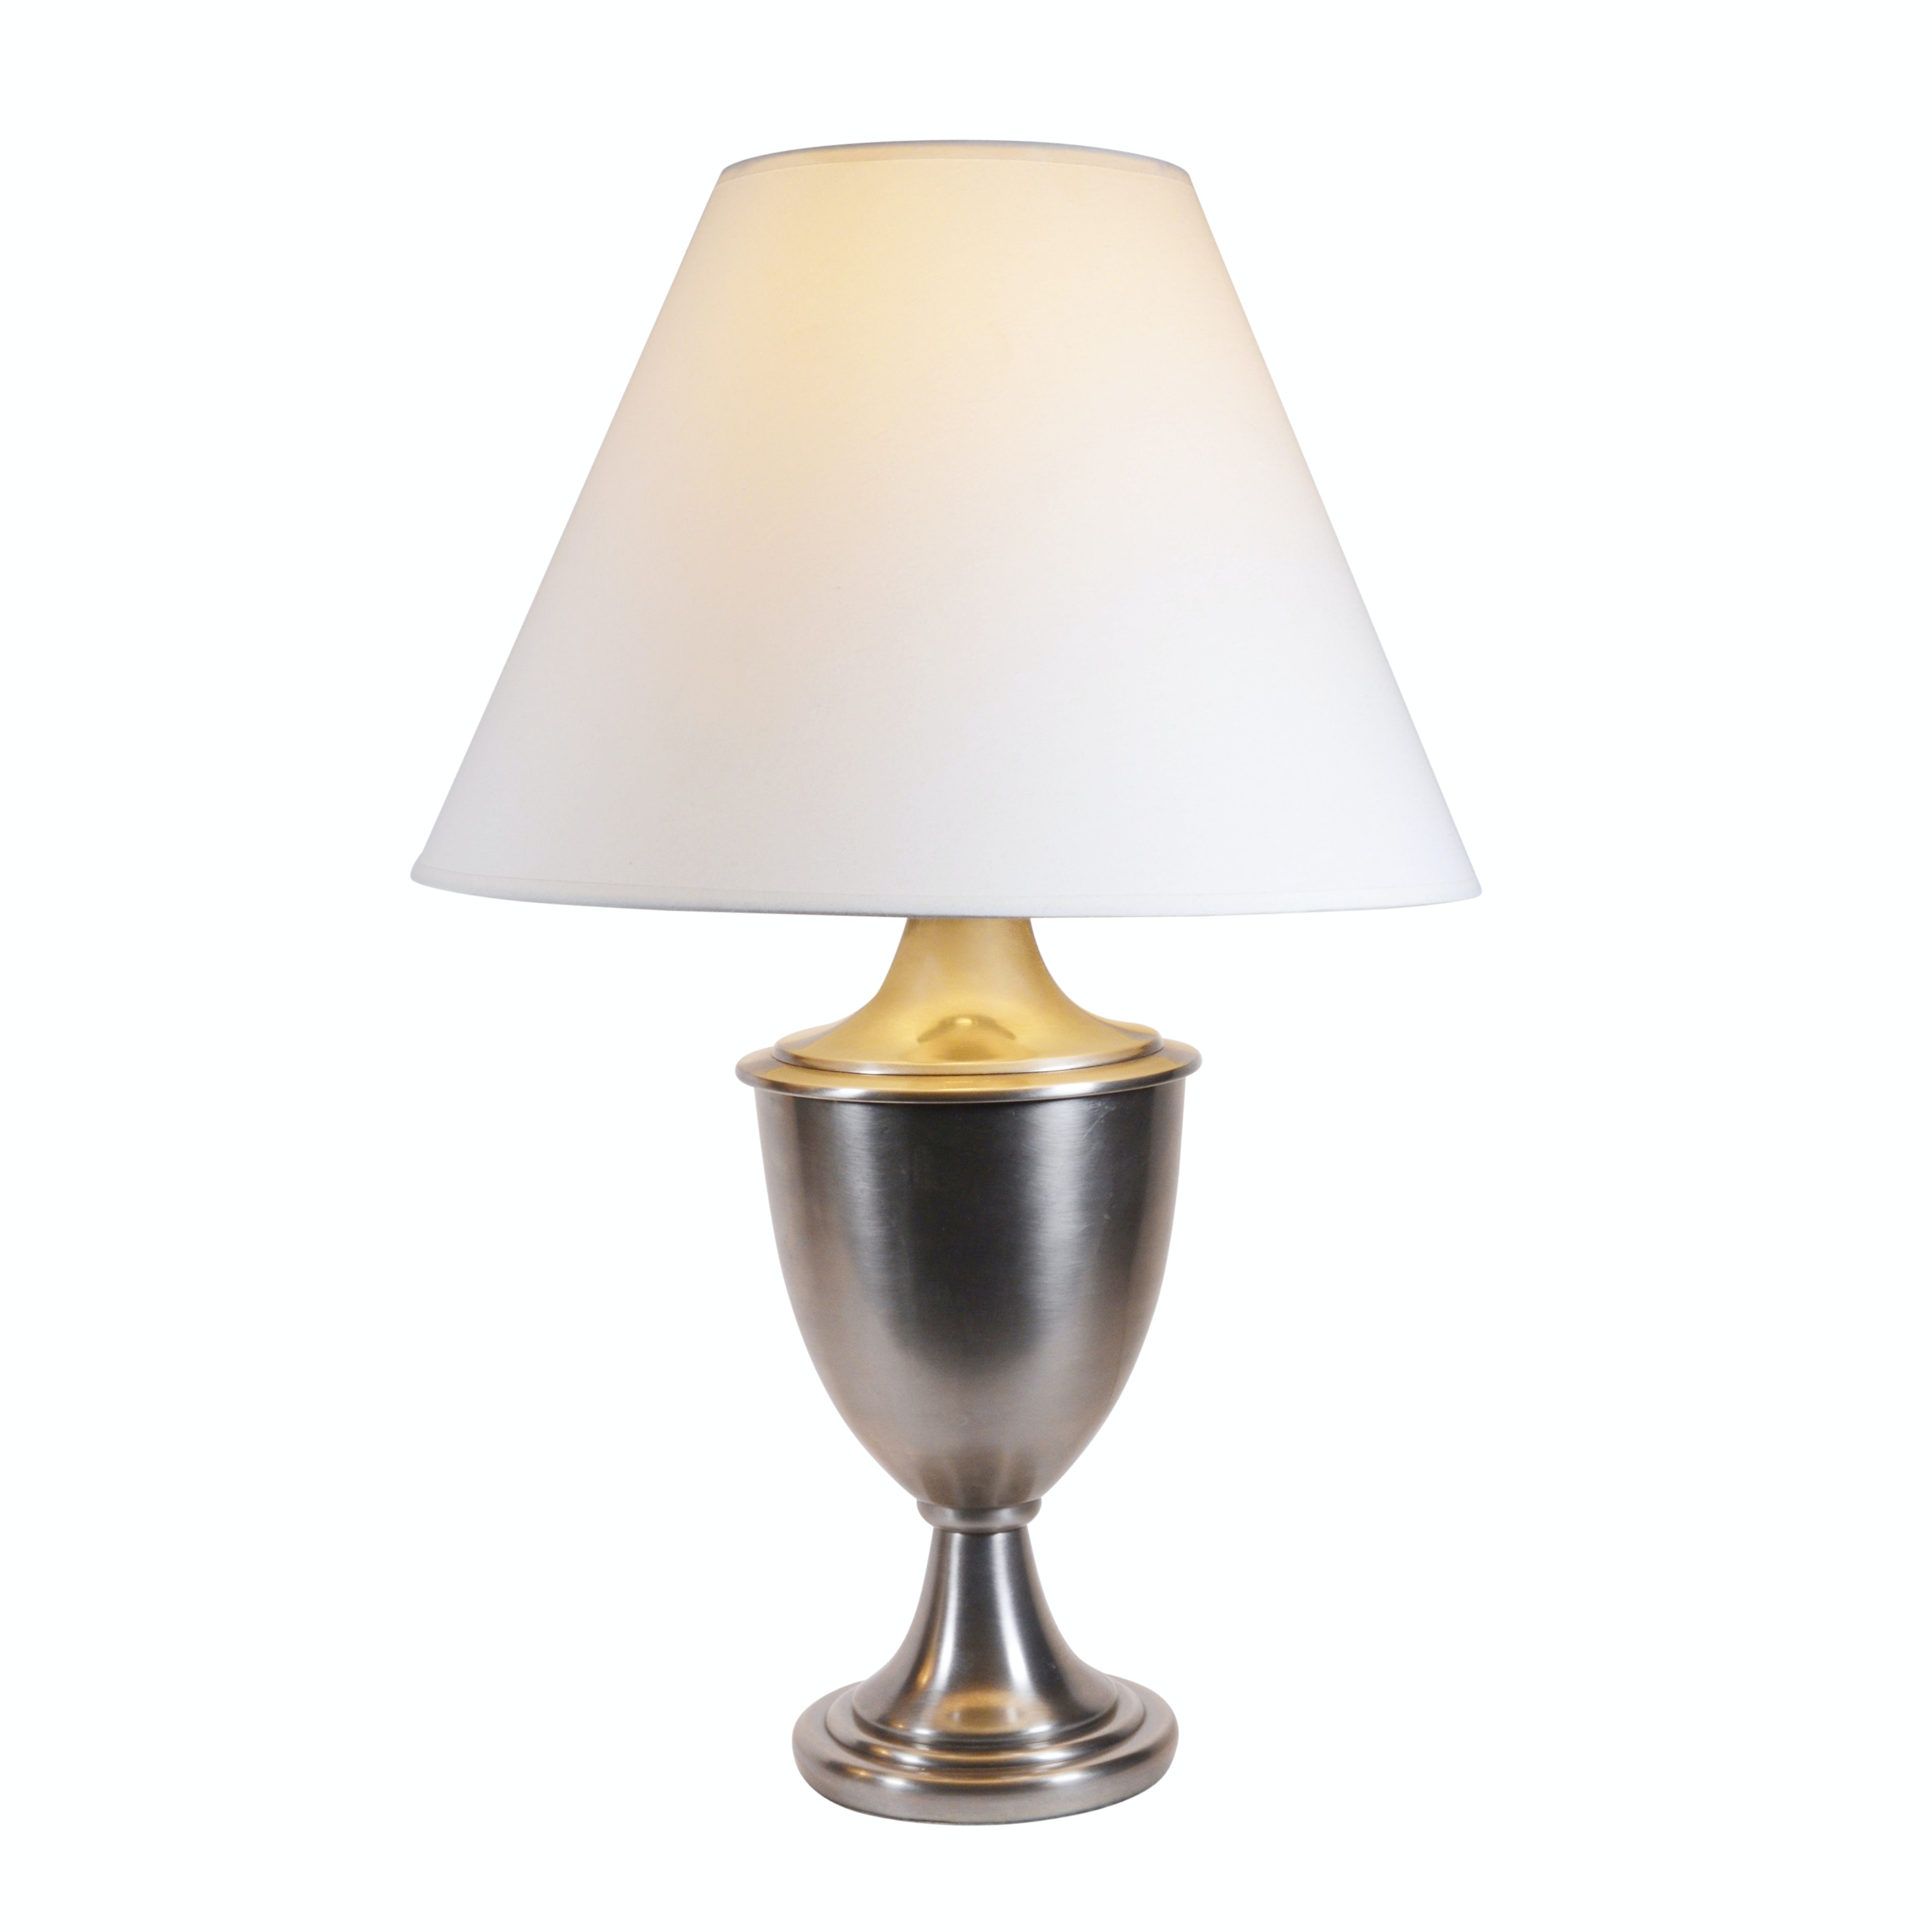 Brushed Nickel Urn Form Table Lamp